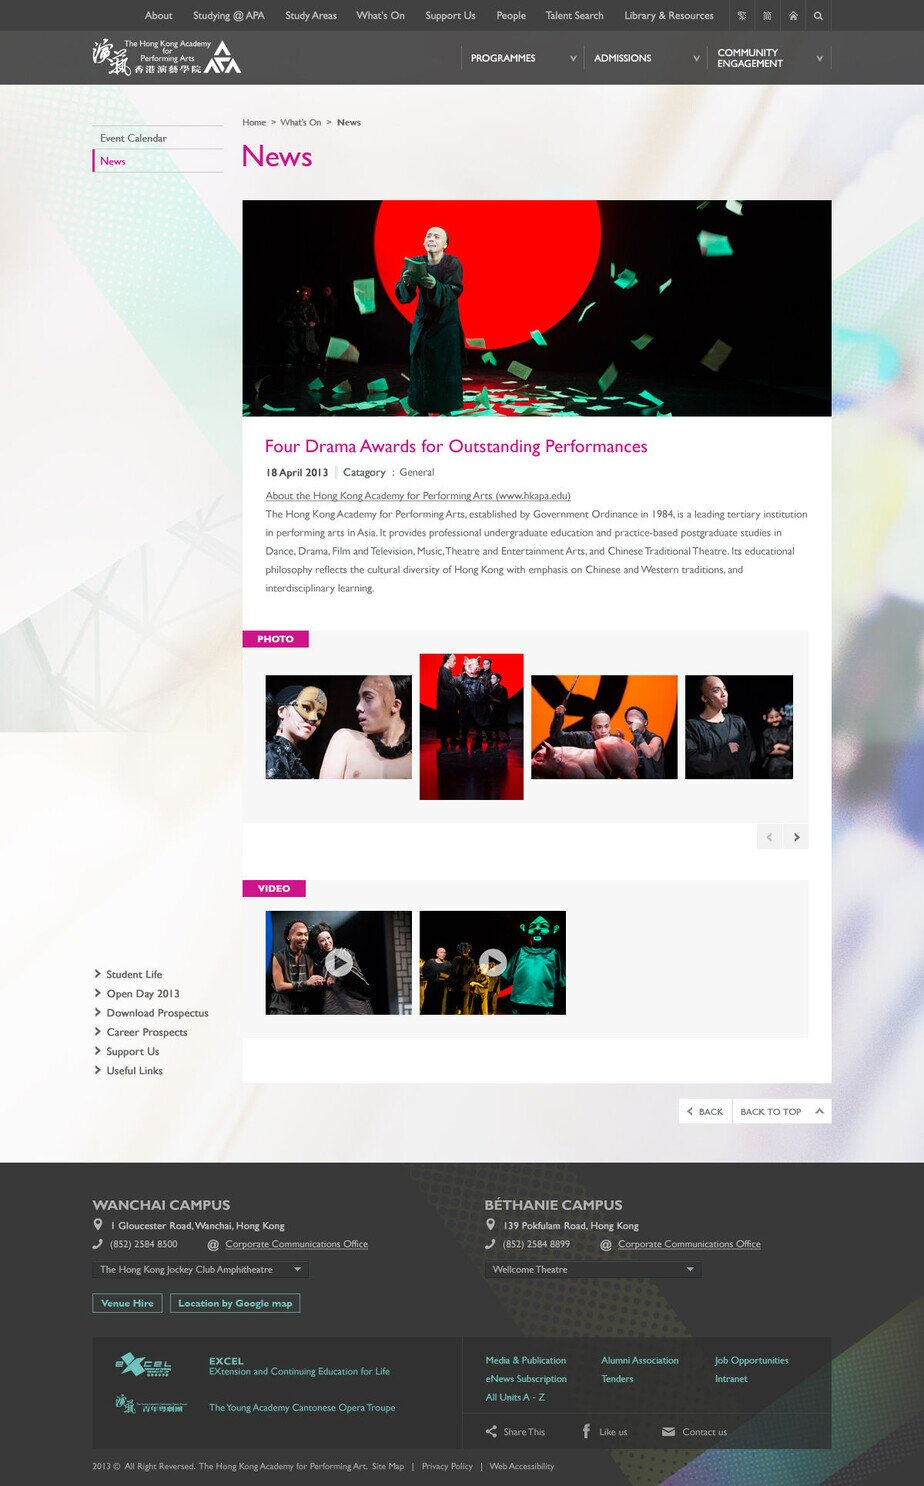 Hong Kong Academy for Performing Arts website screenshot for desktop version 9 of 10